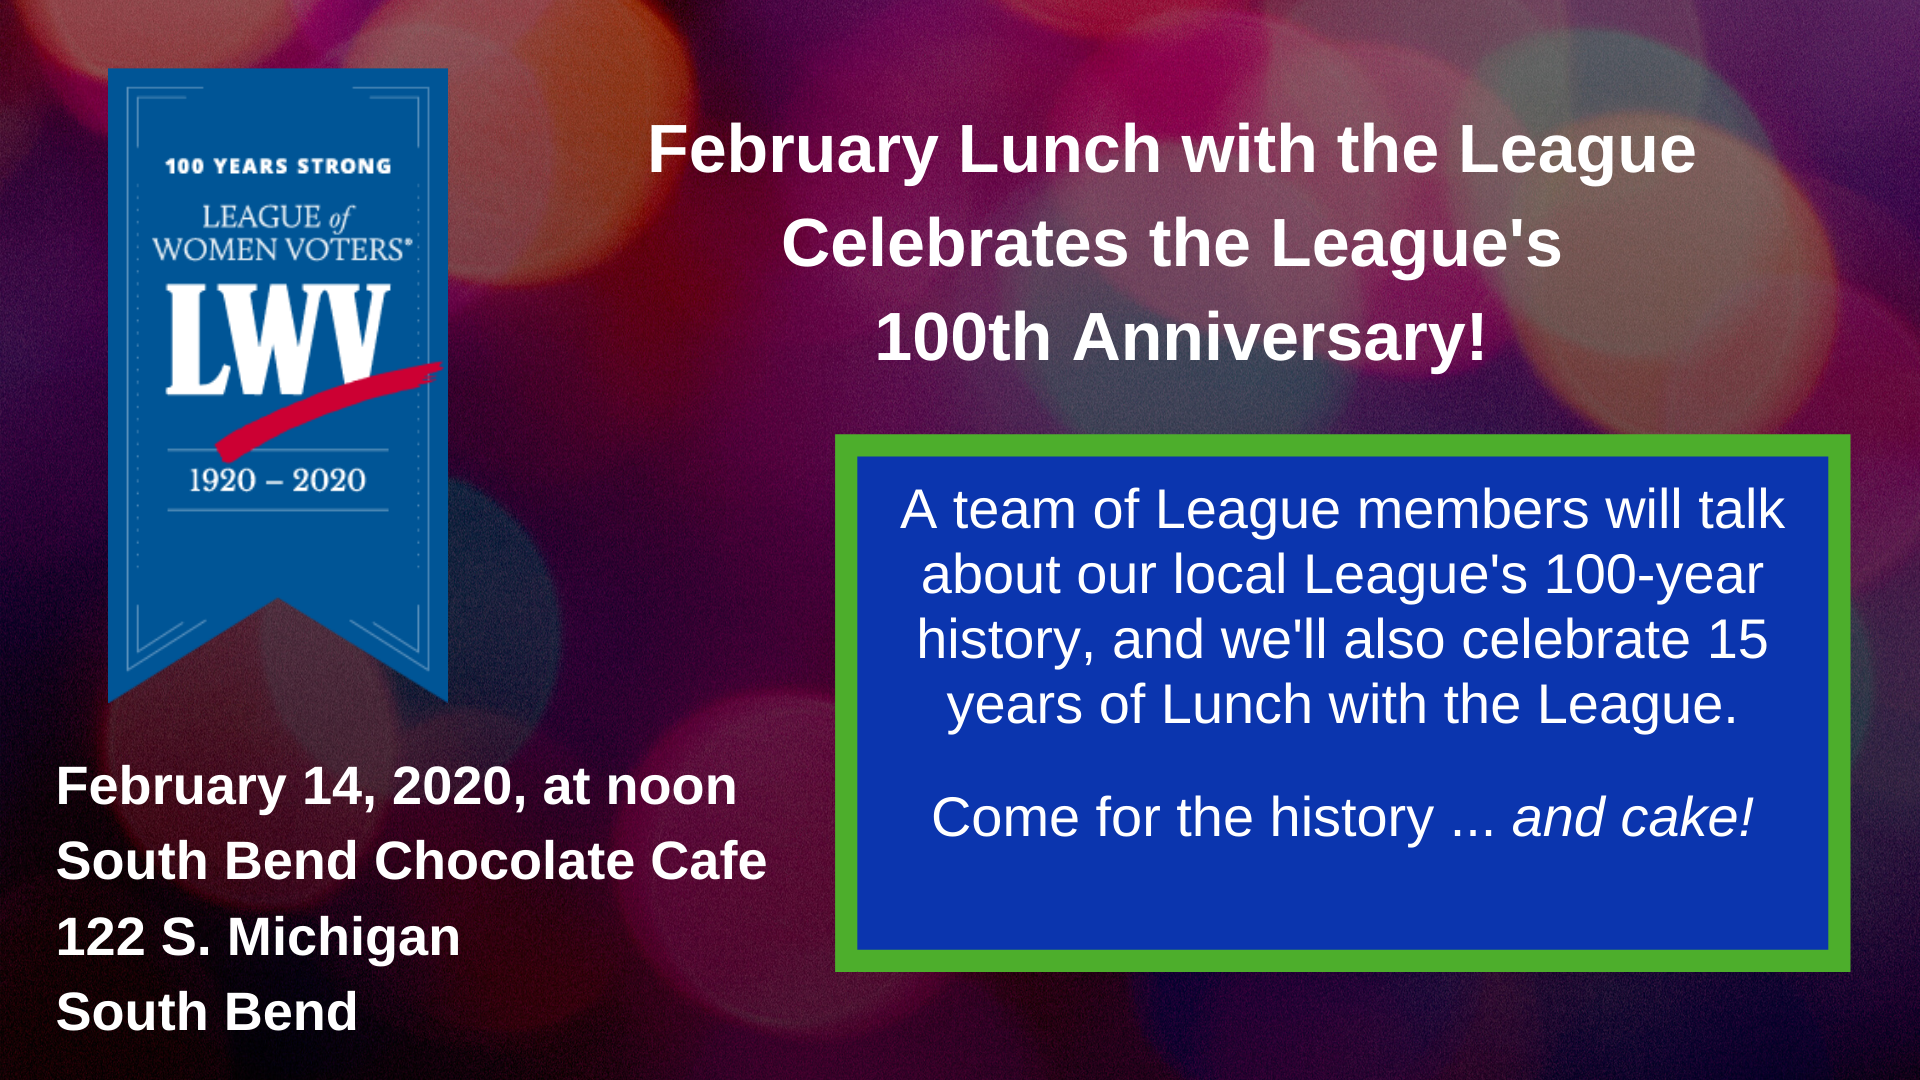 February 2020 Lunch with the League